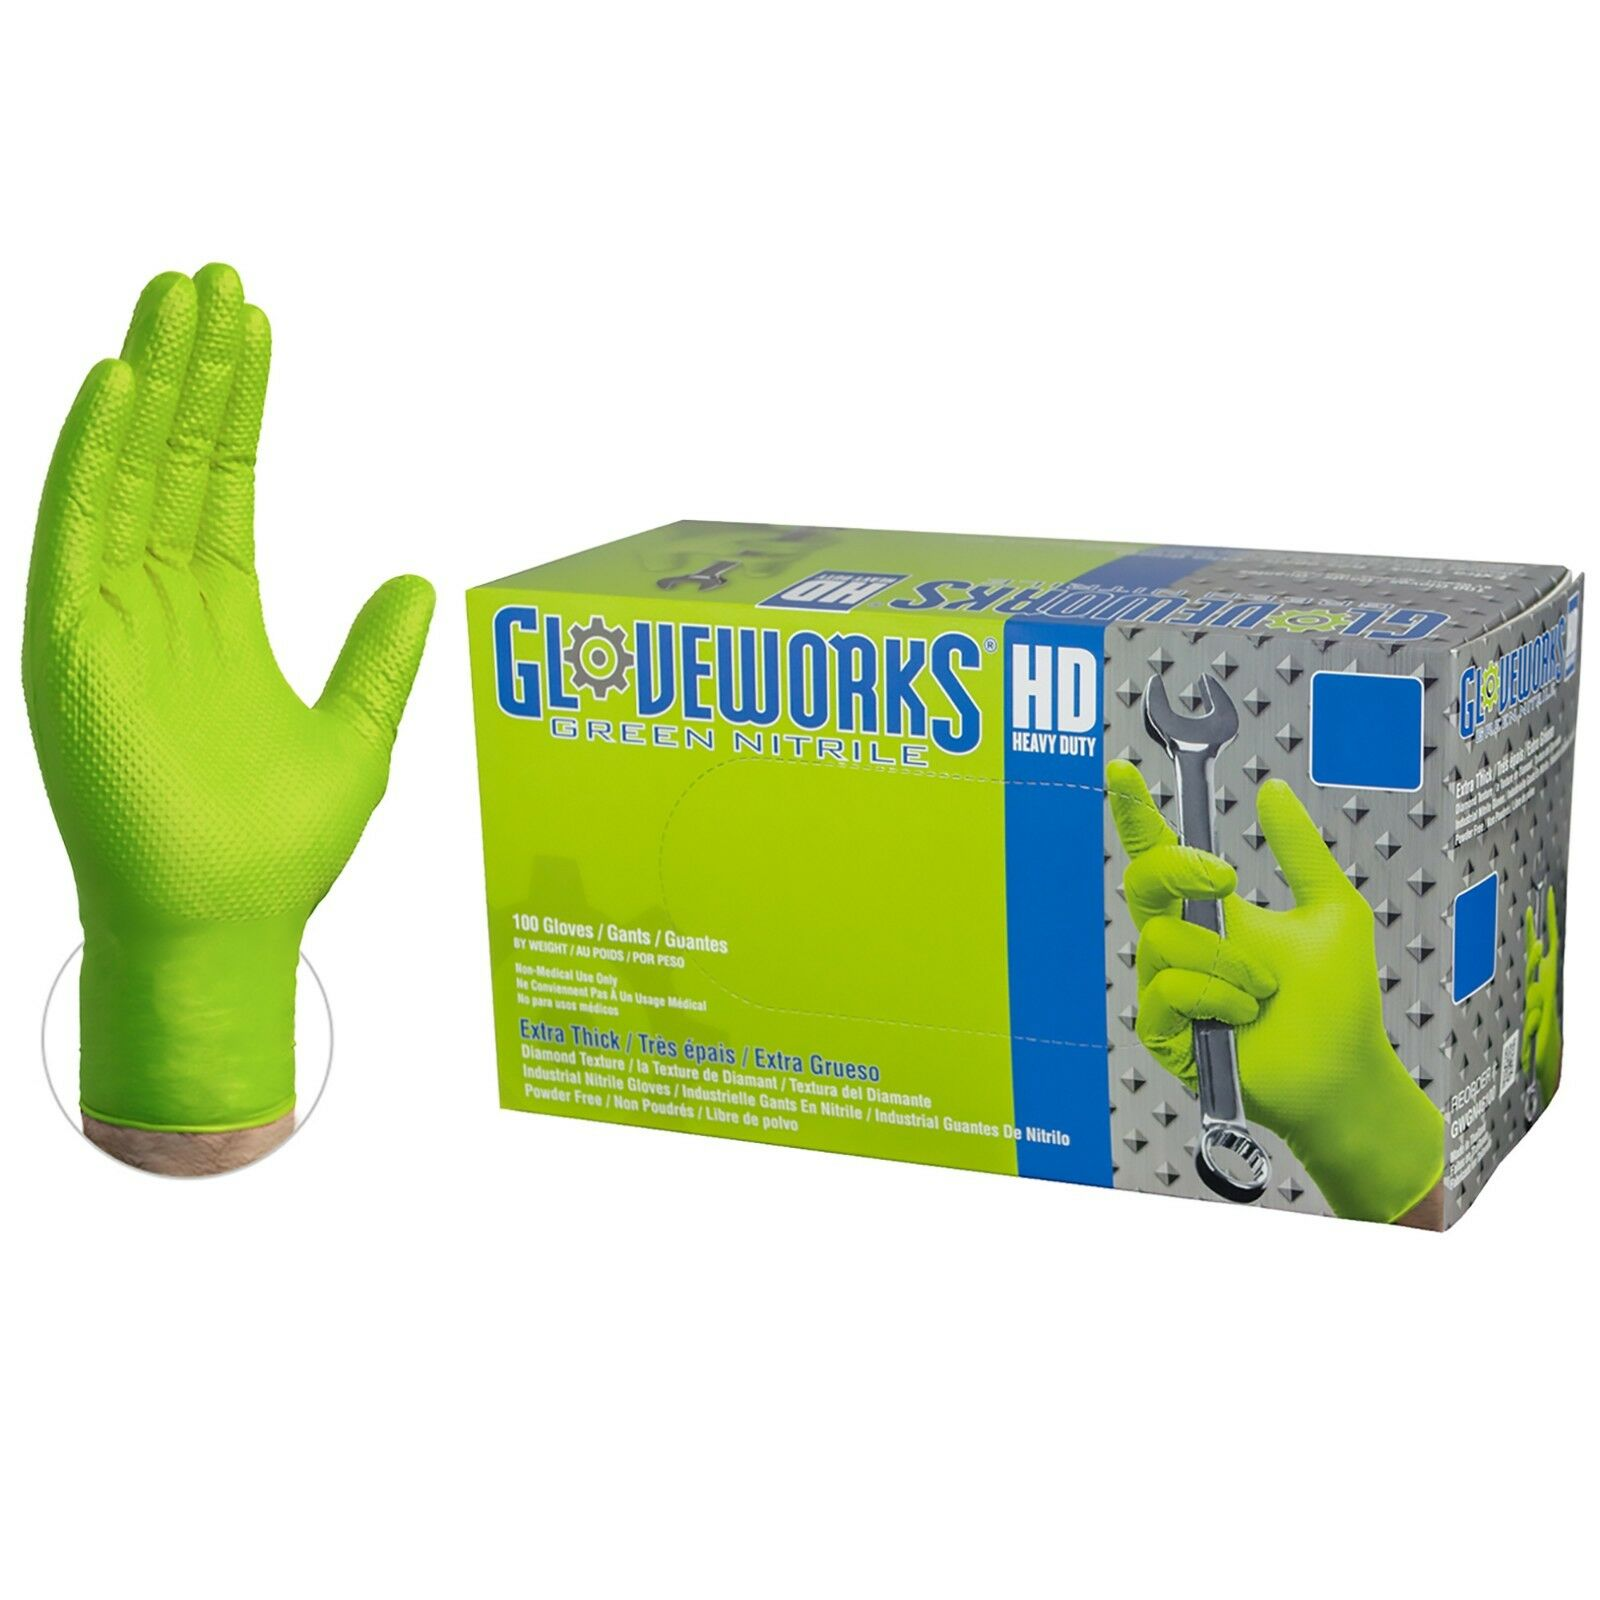 GLOVEWORKS Green Nitrile Heavy Duty Latex Free Disposable Gloves Mechanic Strong